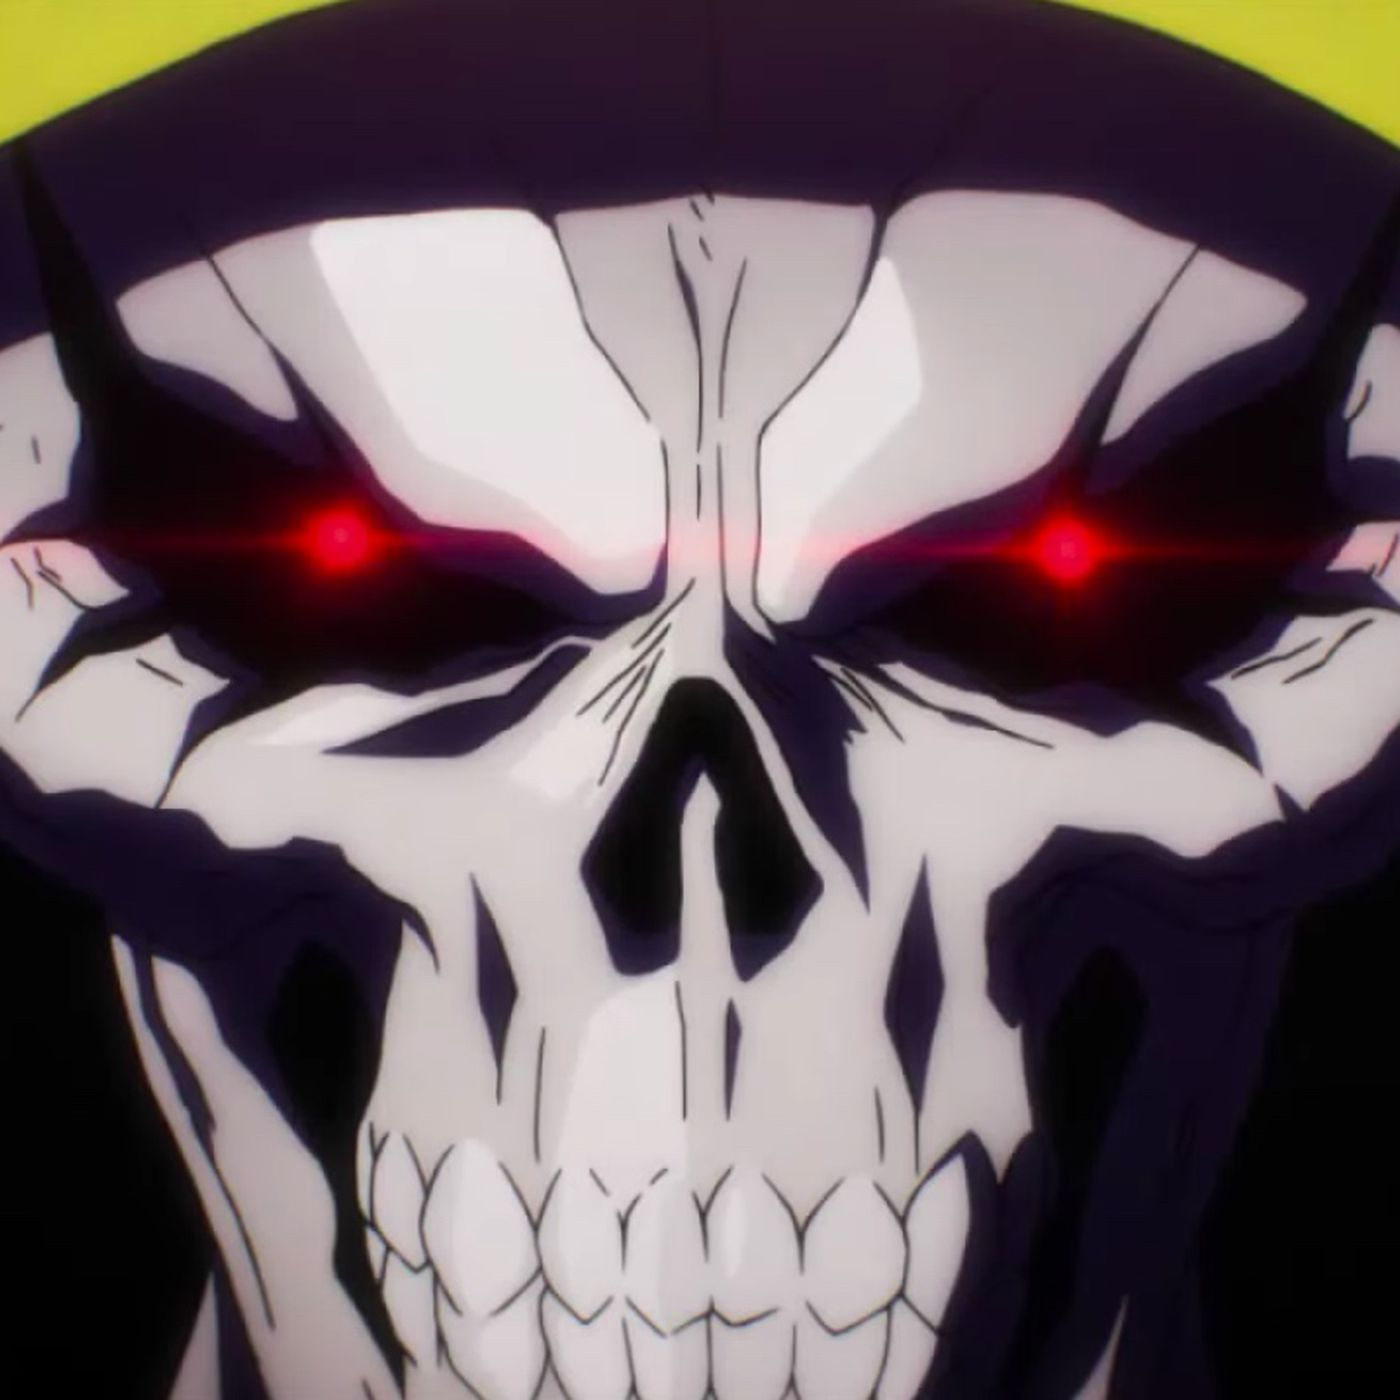 New Nintendo Switch Picross game is based on anime series Overlord